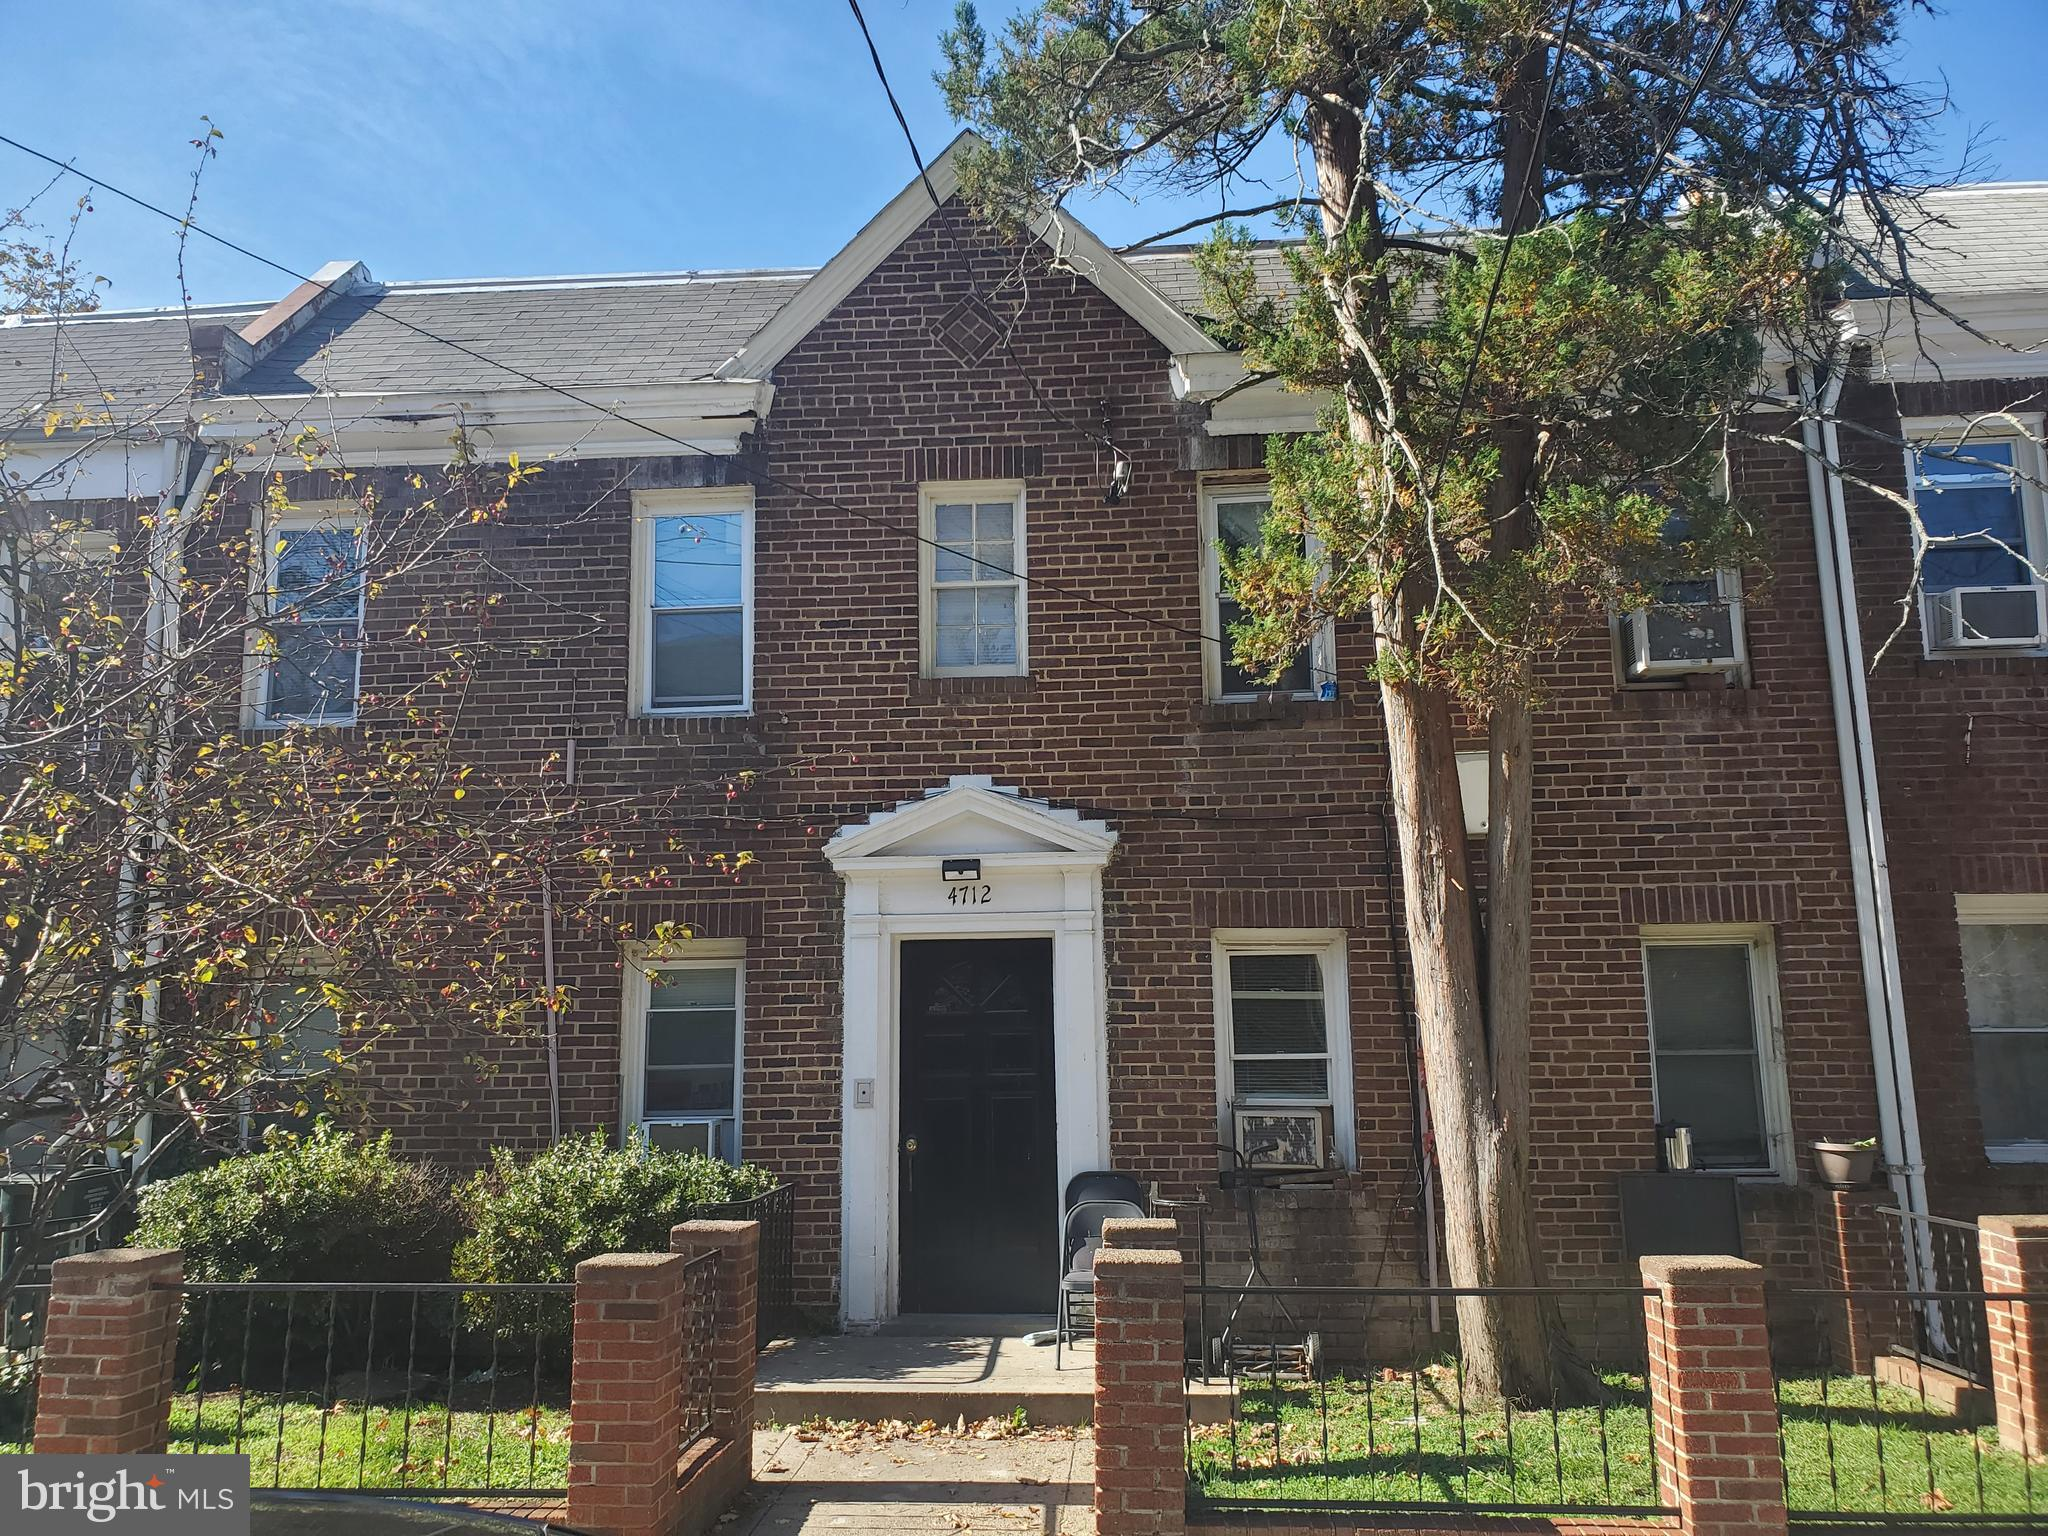 Occupied 4 unit building in Petworth consisting of  4 -1 bedroom  units with enclosed  porches. This